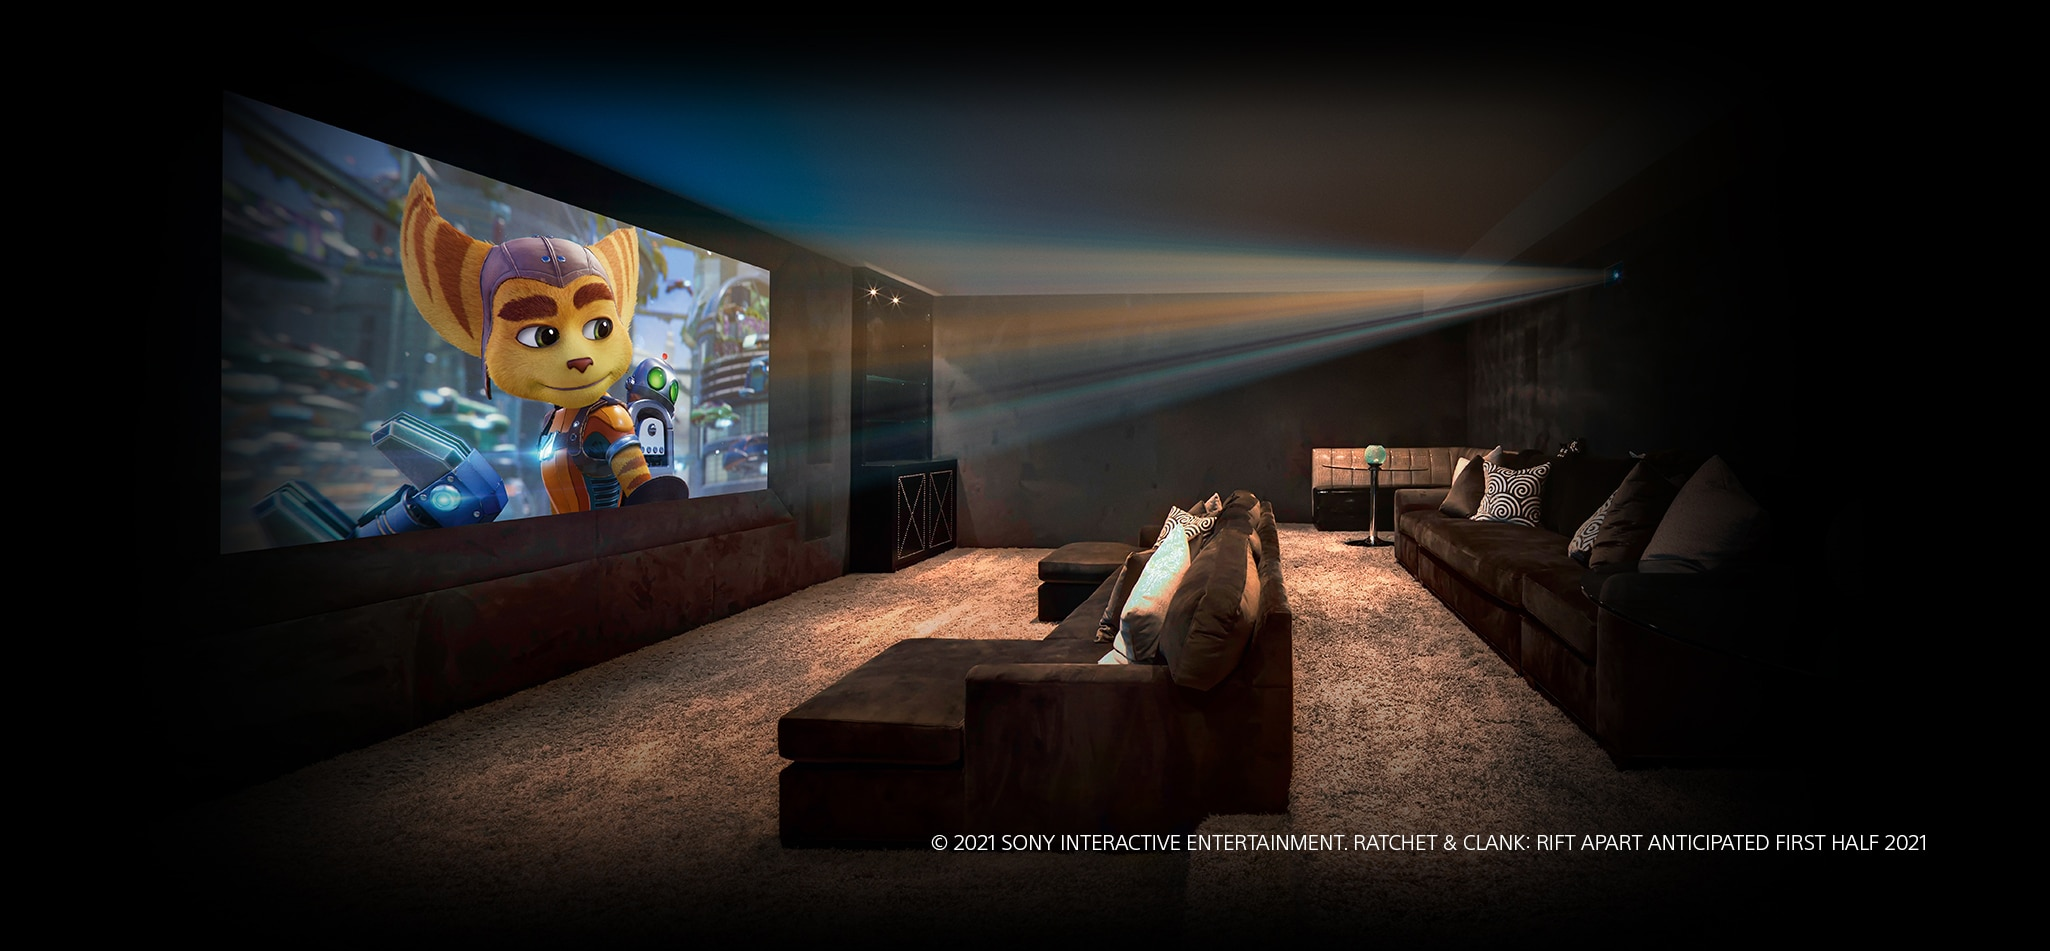 Image showing a home cinema with a projector showing Ratchet and Clank videogame